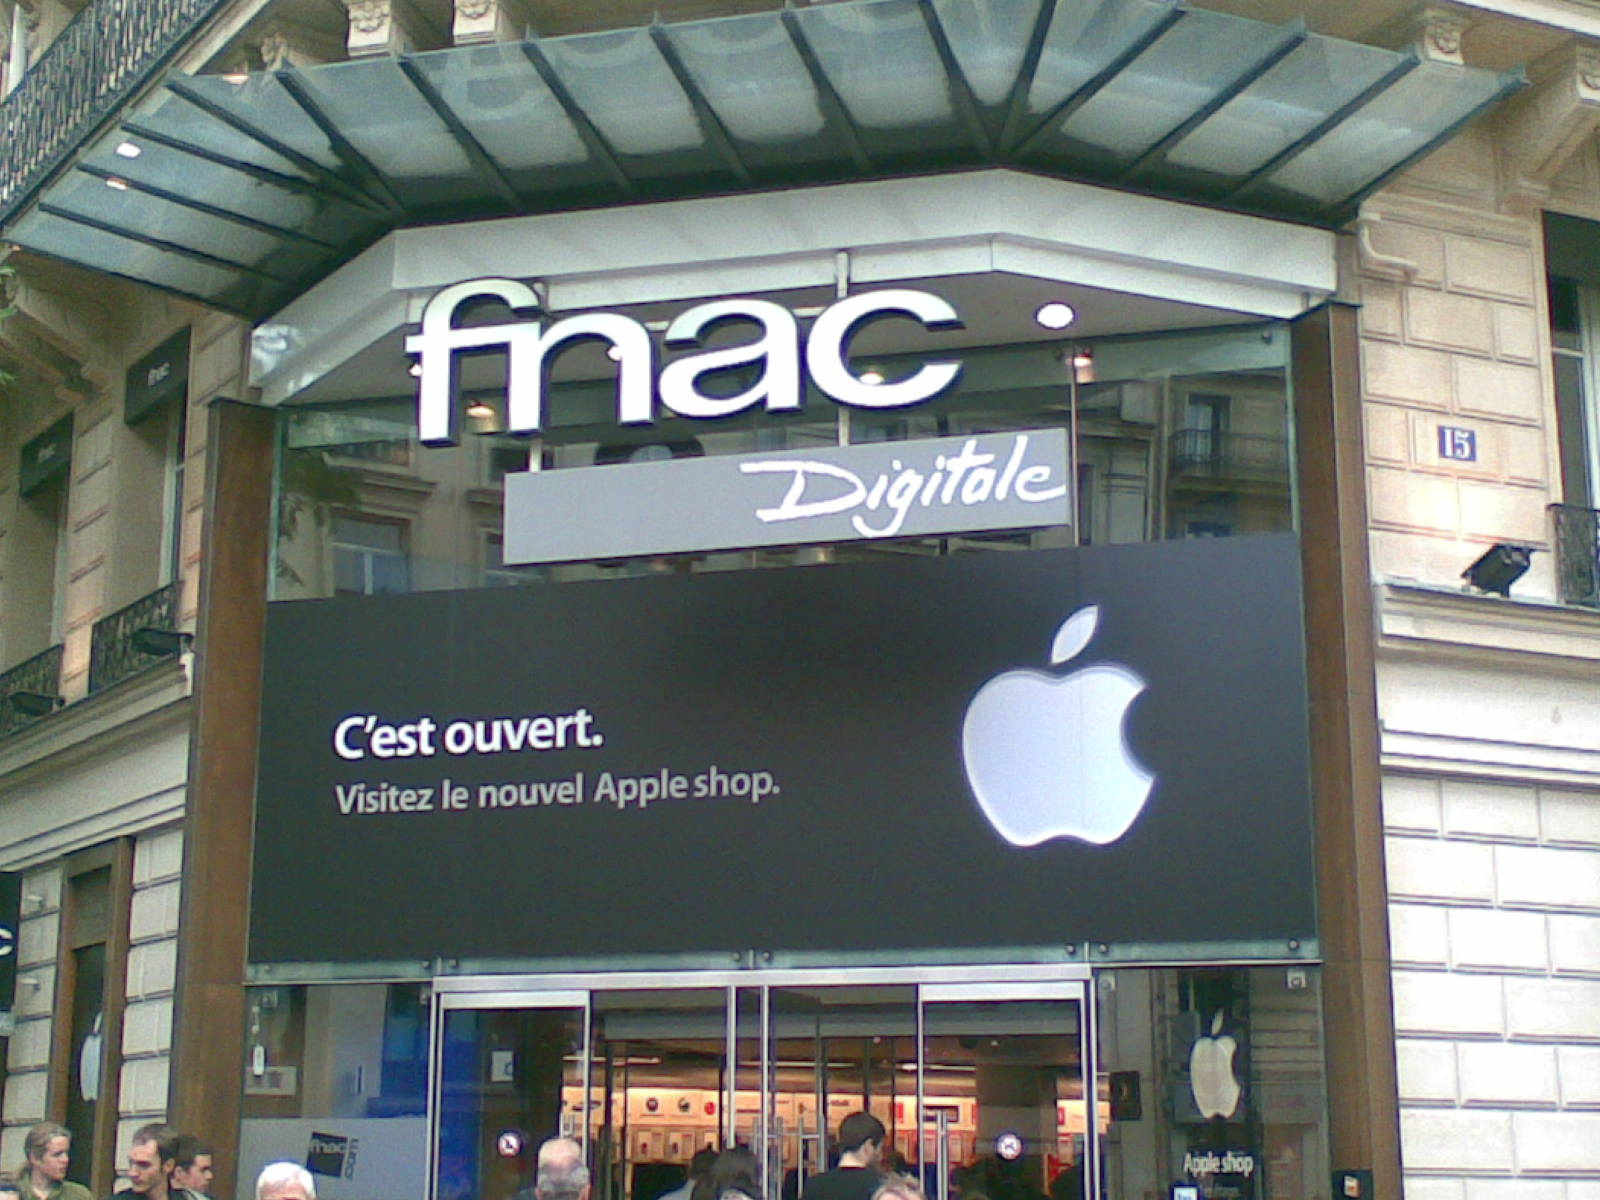 Apple Shop a ouvert à  la Fnac Digitale